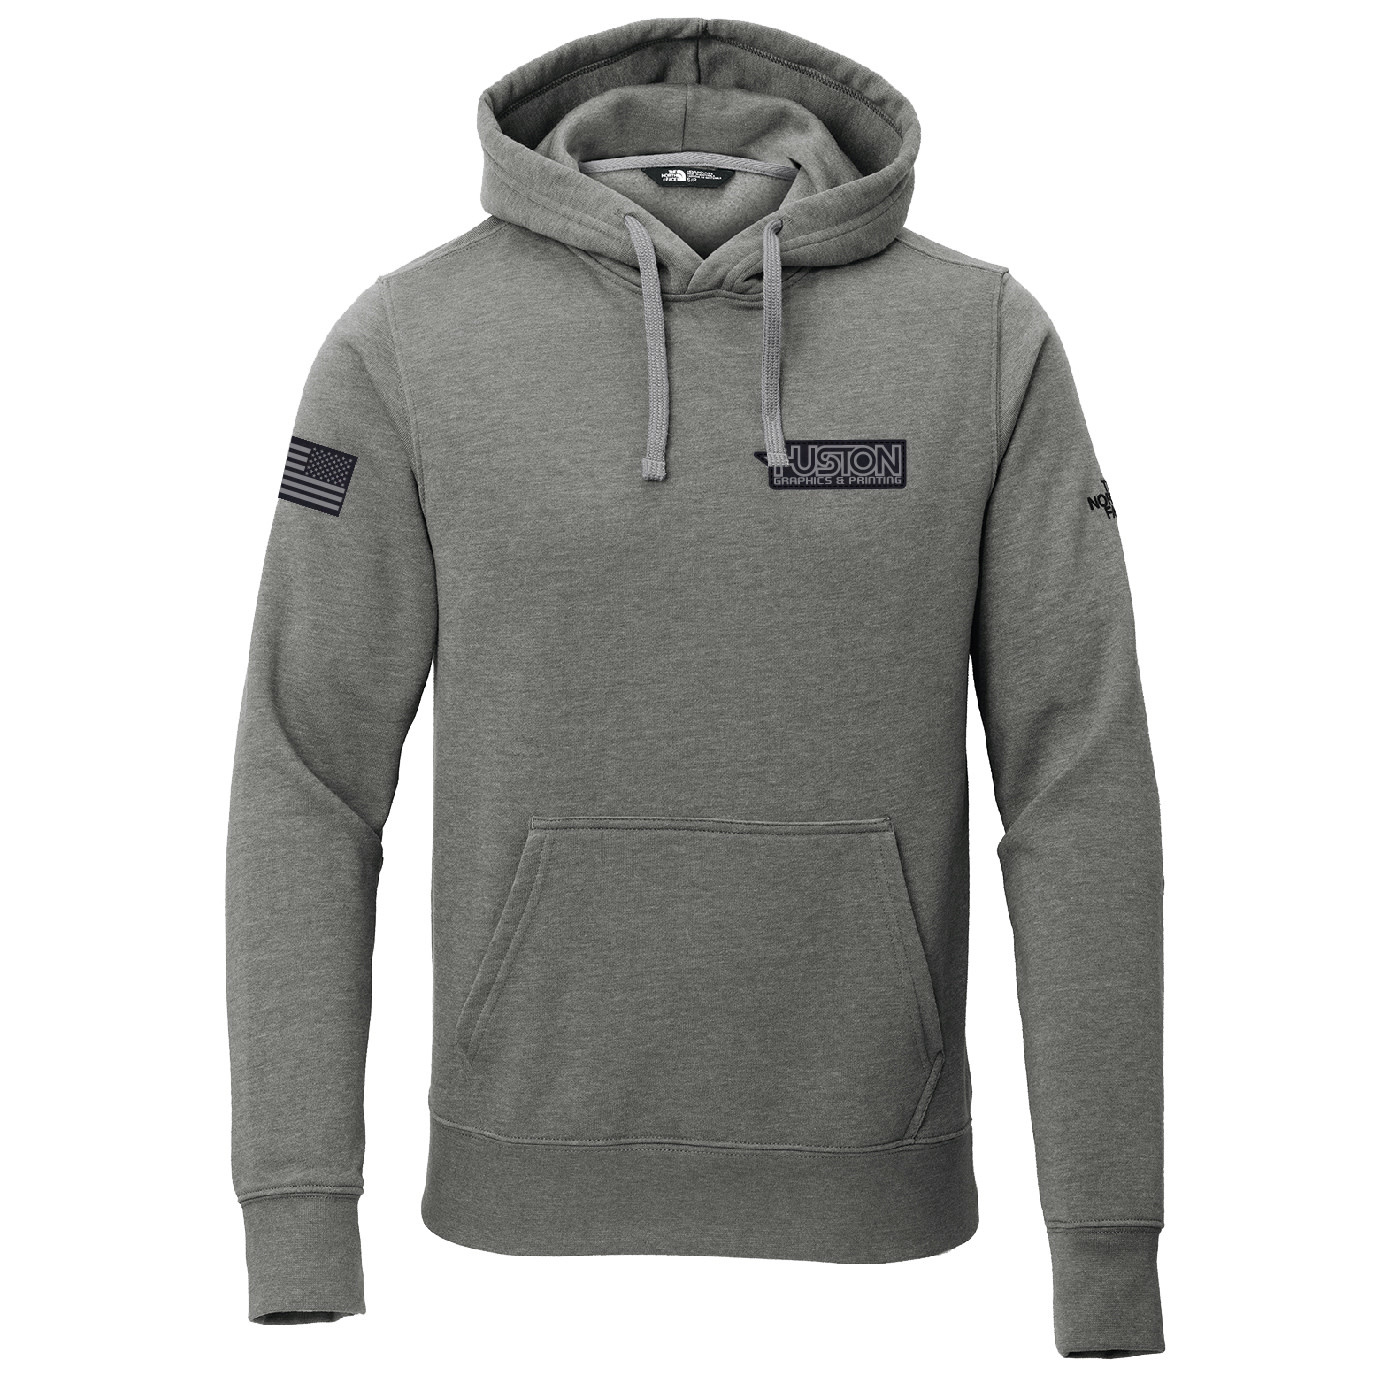 The North Face The North Face Pullover Hoodie (Medium Grey Heather)